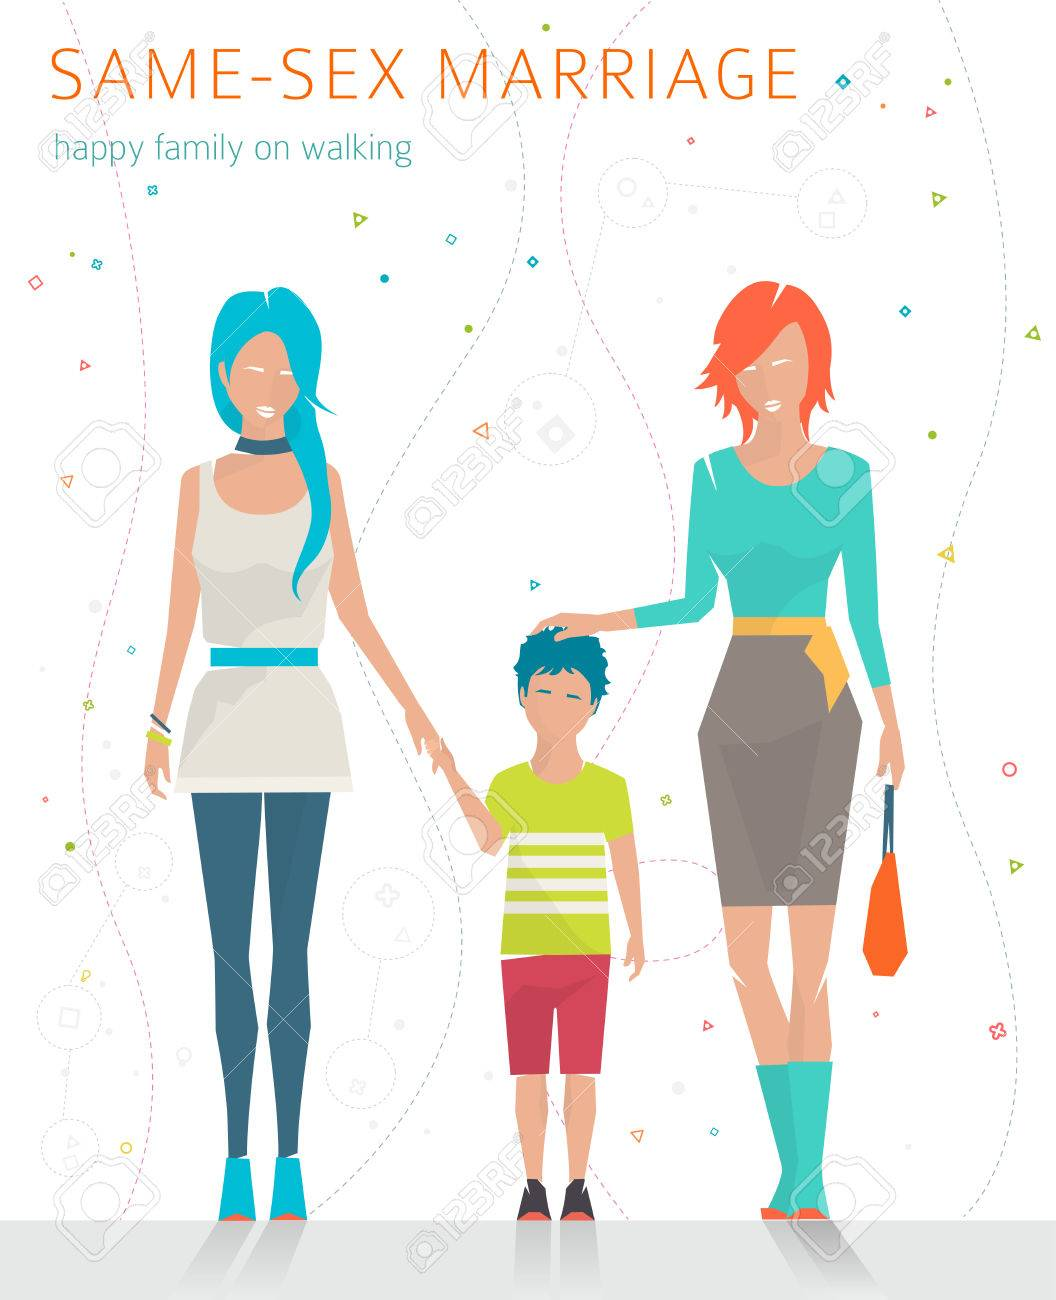 Concept of same-sex marriage  Happy family is going for a walk